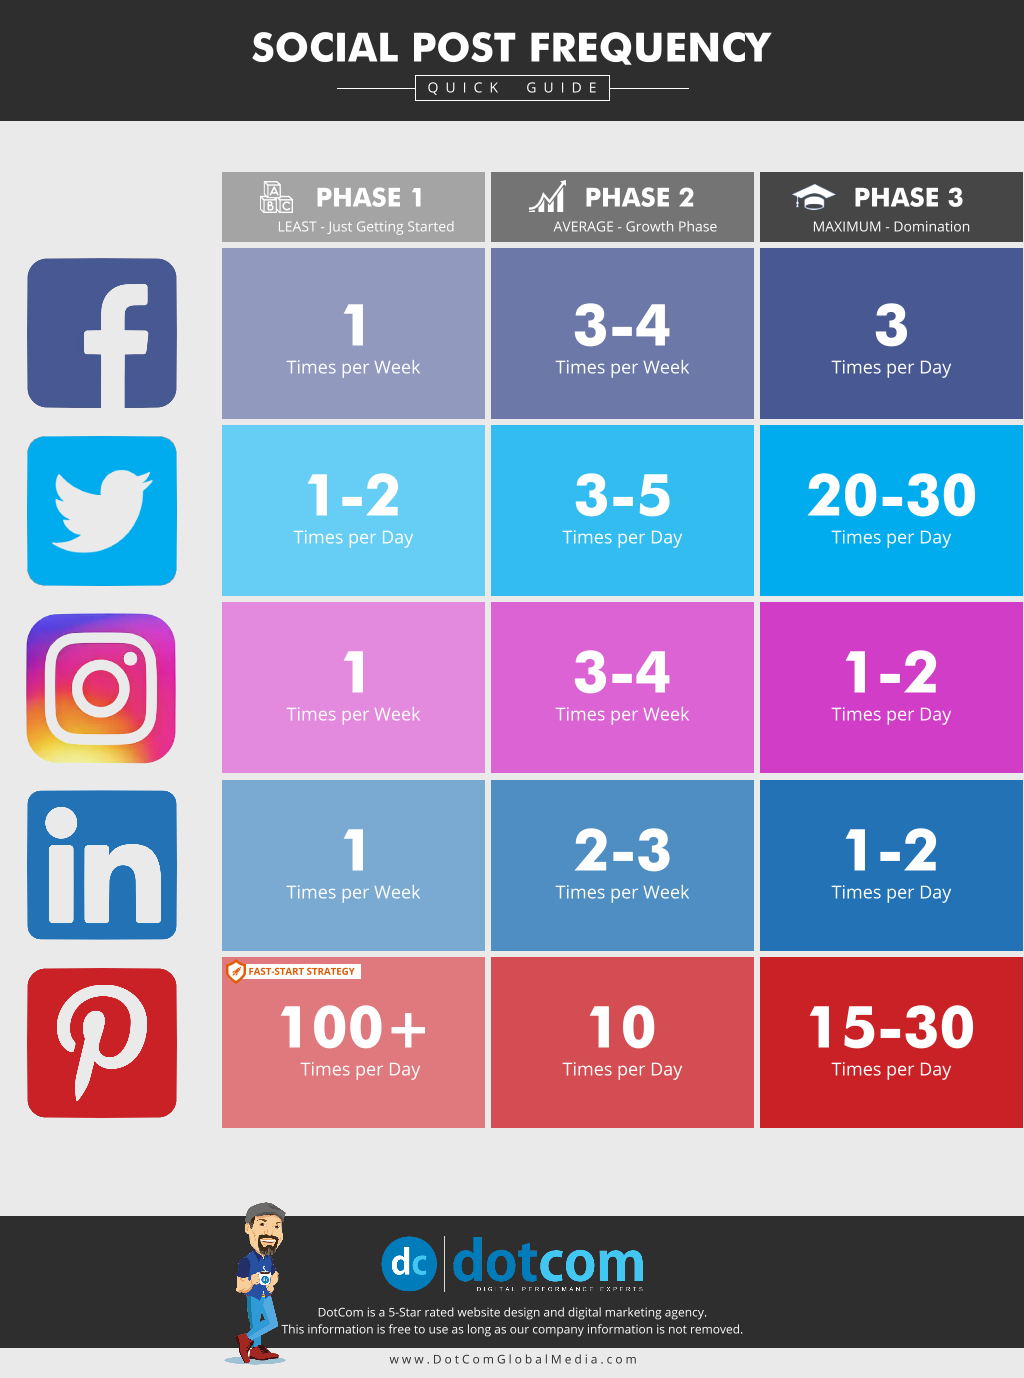 Social Post Frequency Chart Social Media Marketing Blog Social Media Marketing Plan Social Media Infographic